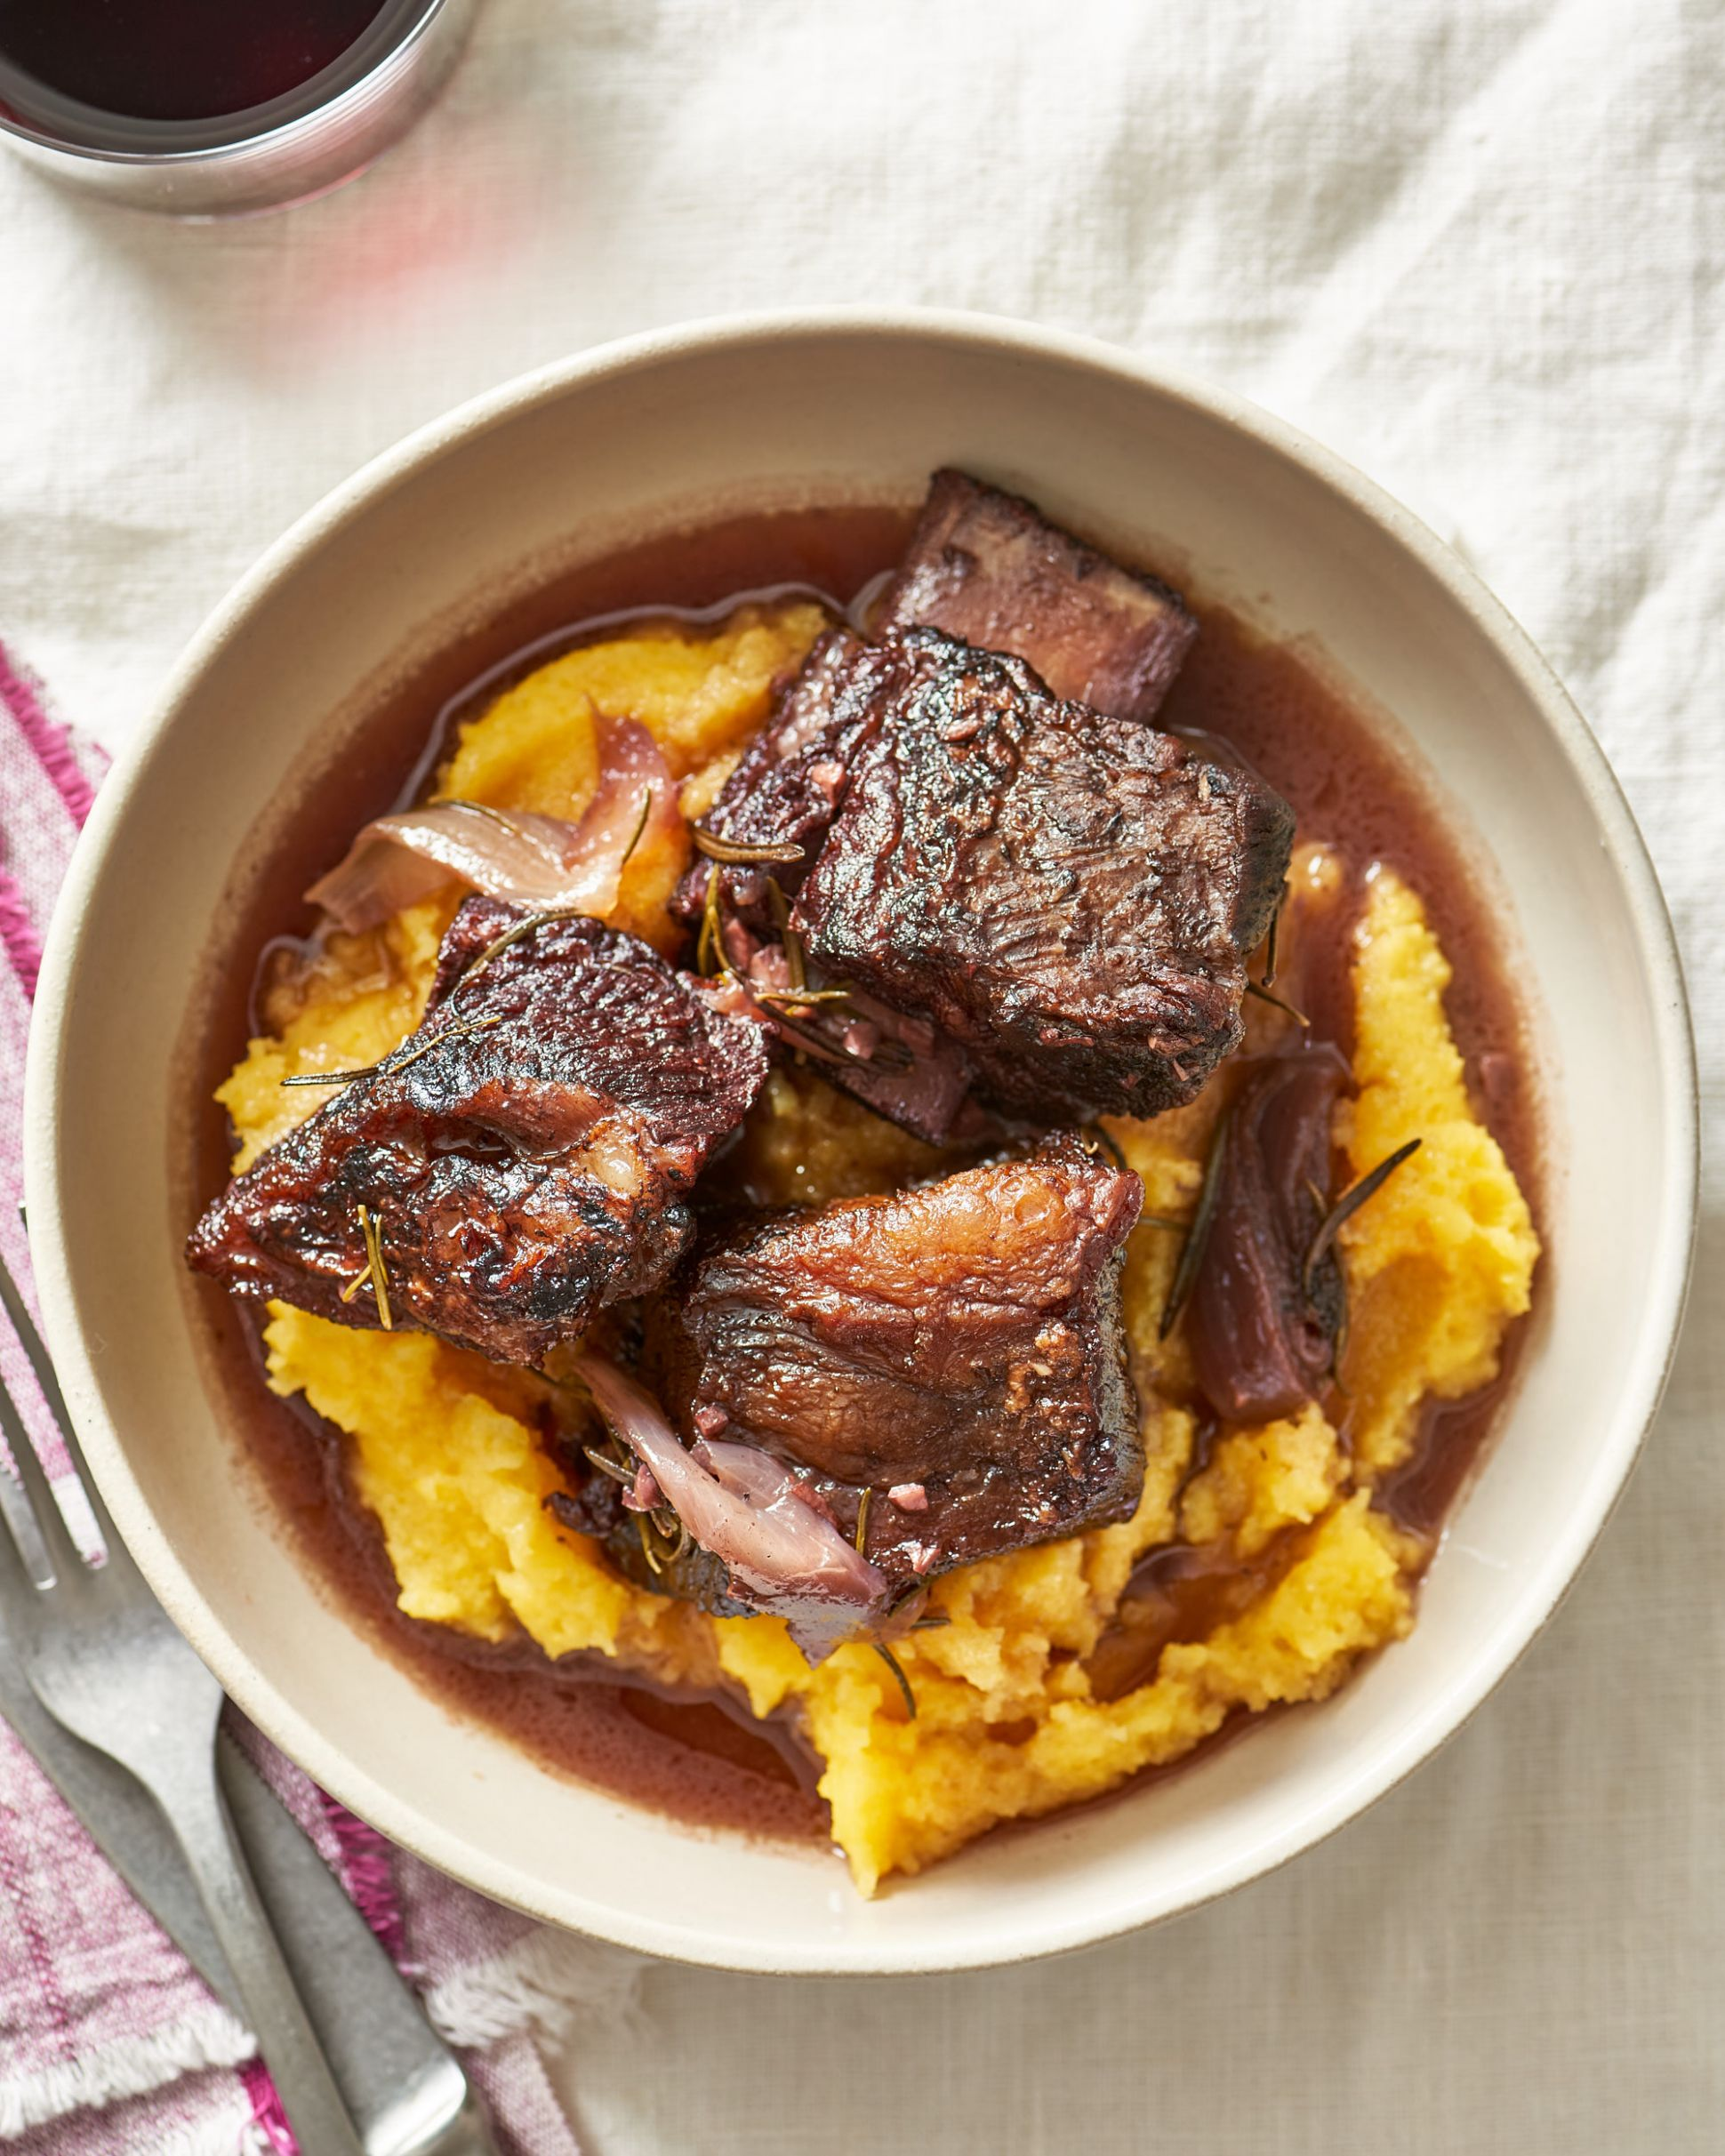 How To Make Braised Short Ribs in the Oven